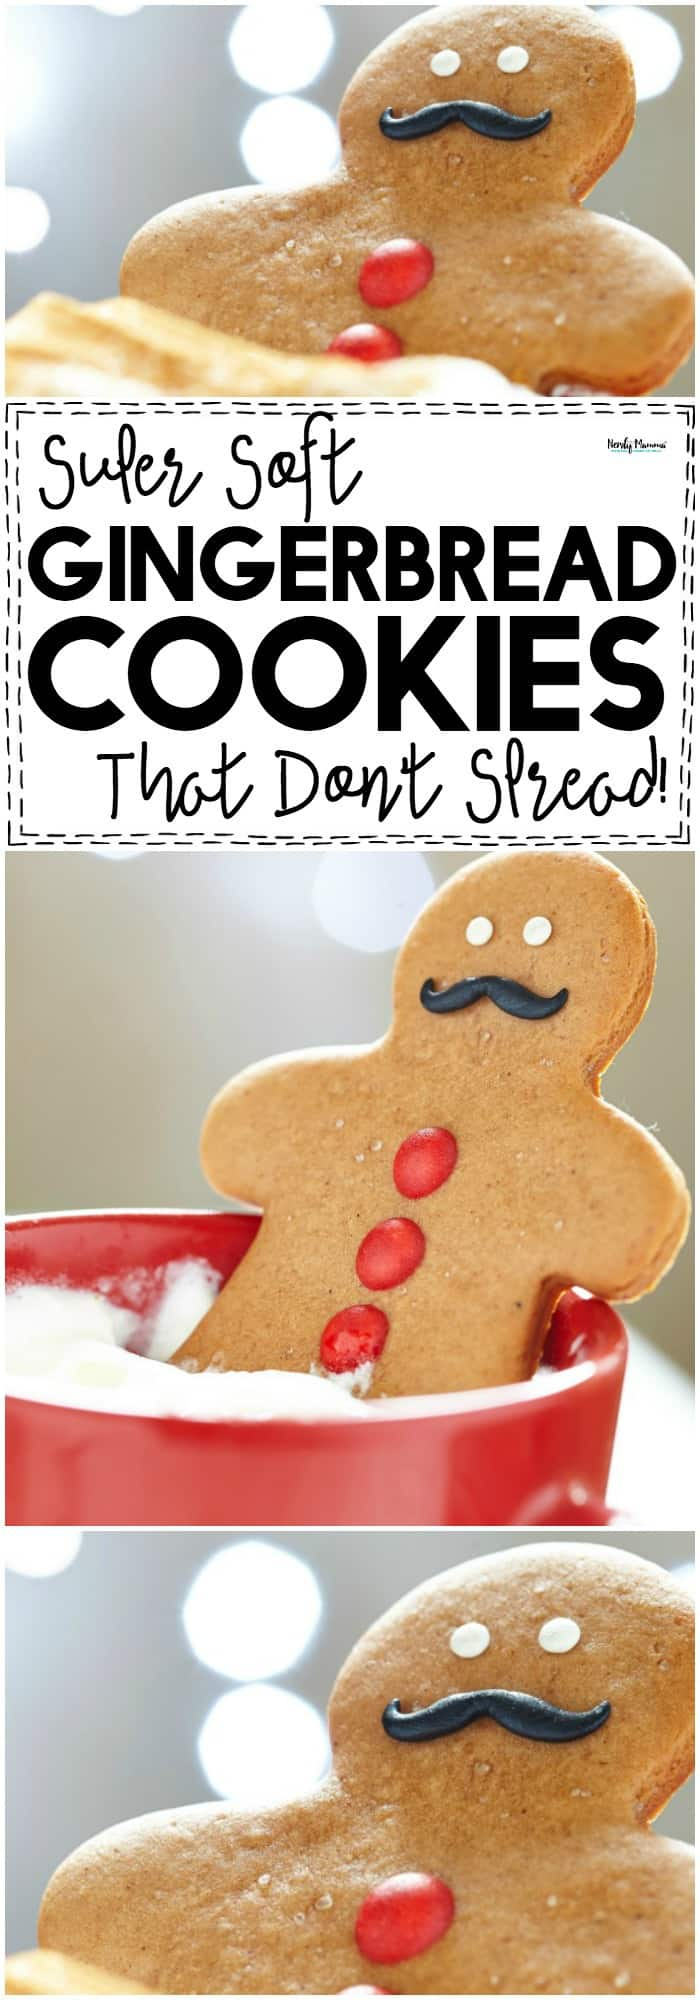 These SUPER soft Gingerbread Cookies that don't spread are AMAZING. Best. Recipe. EVER!